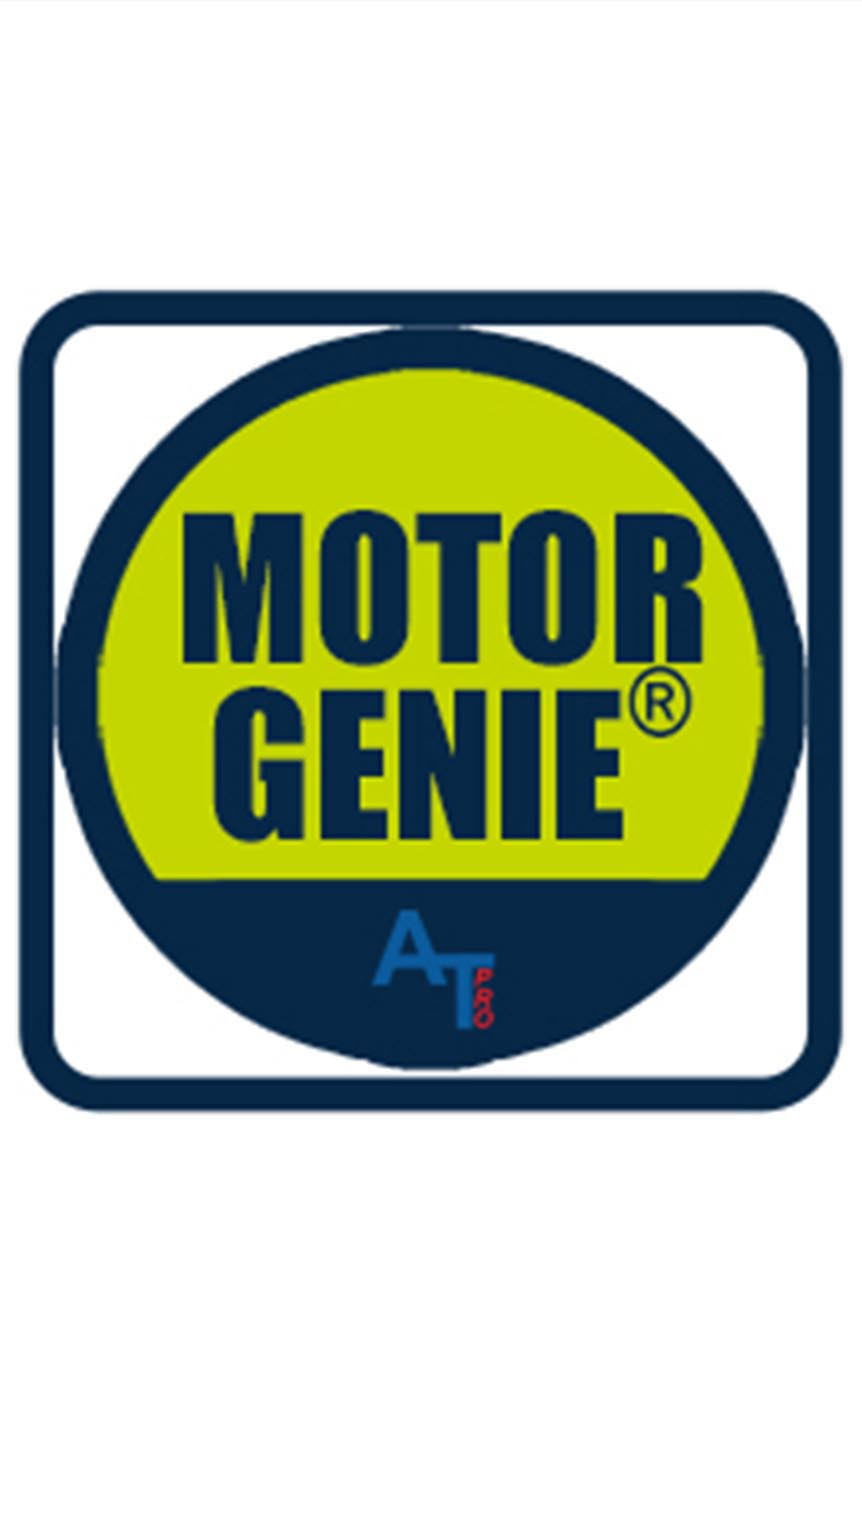 ALL-TEST Pro MOTOR GENIE® App